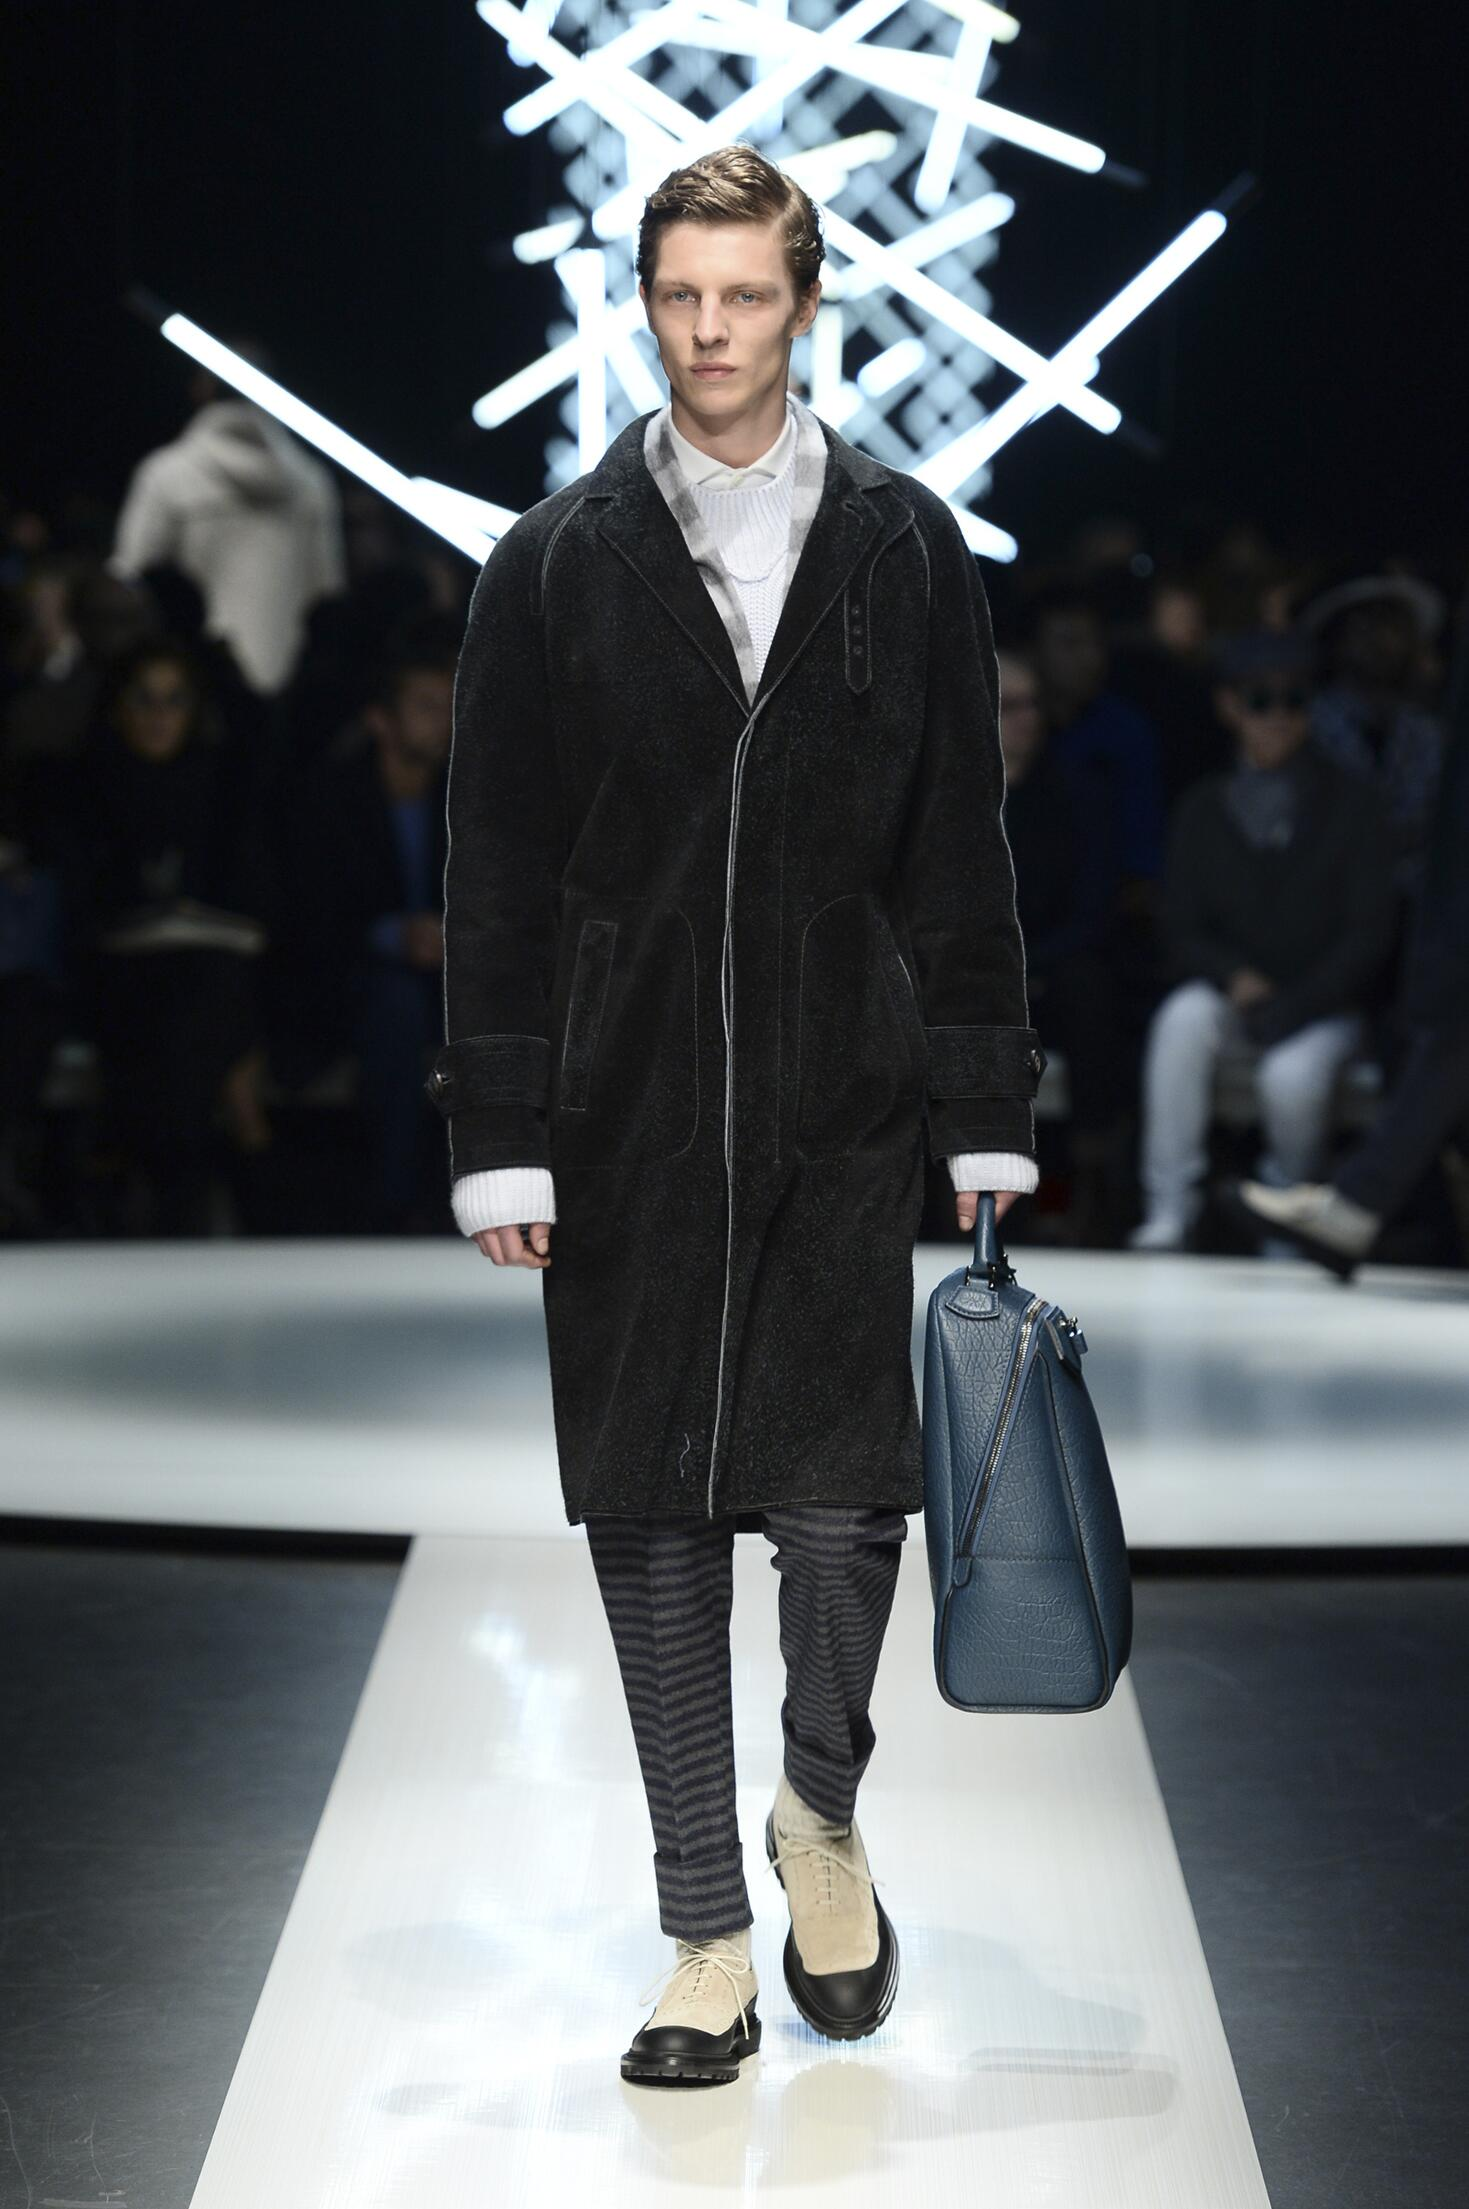 Canali Collection Fashion Show FW 2015 2016